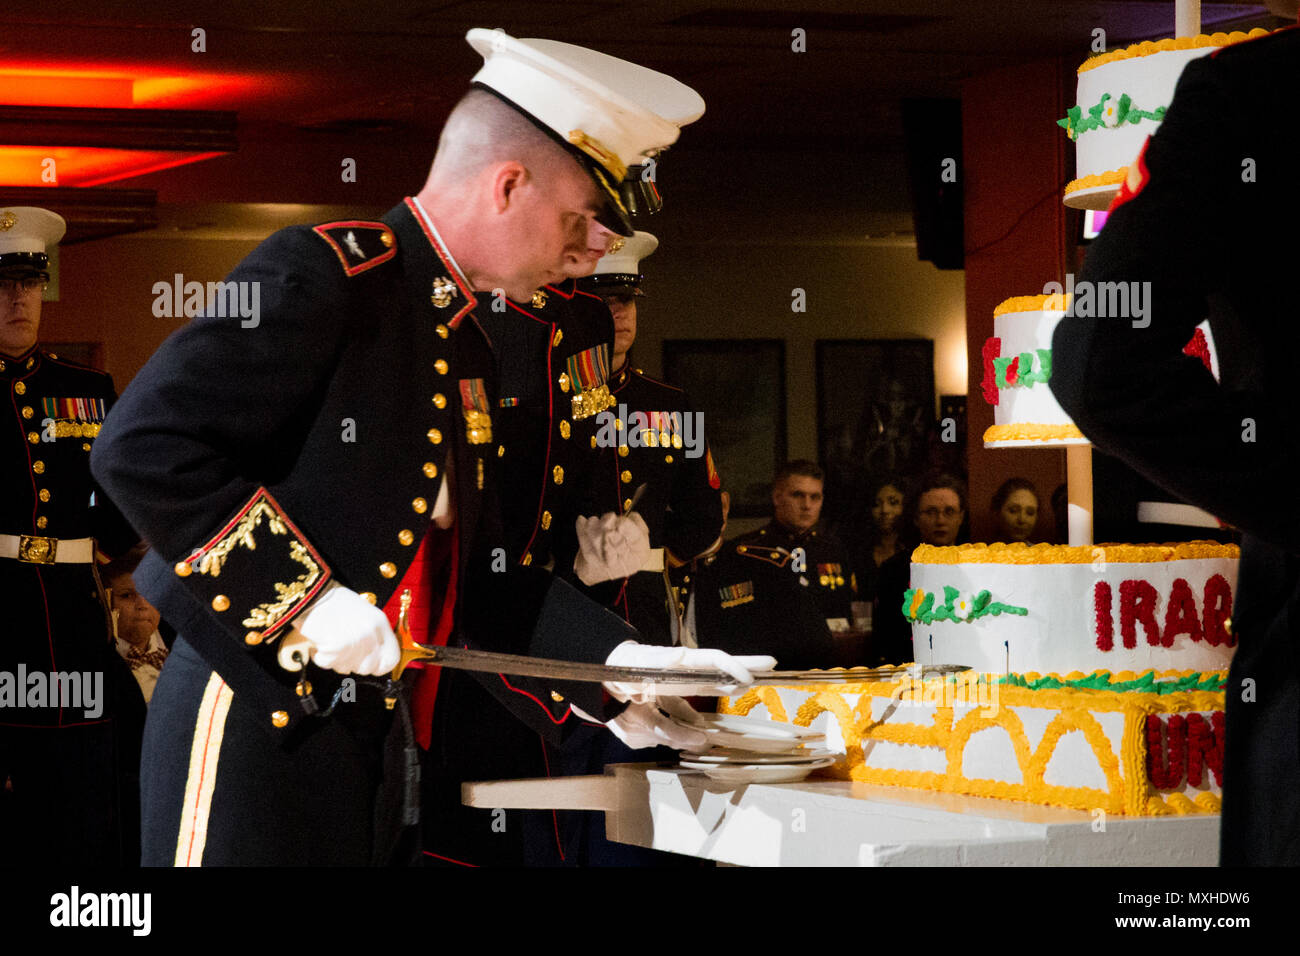 Tye R Wallace Commander Of The 31st Marine Expeditionary Unit Cuts A Birthday Cake As Part Corps Ball Ceremony At Camp Hansen